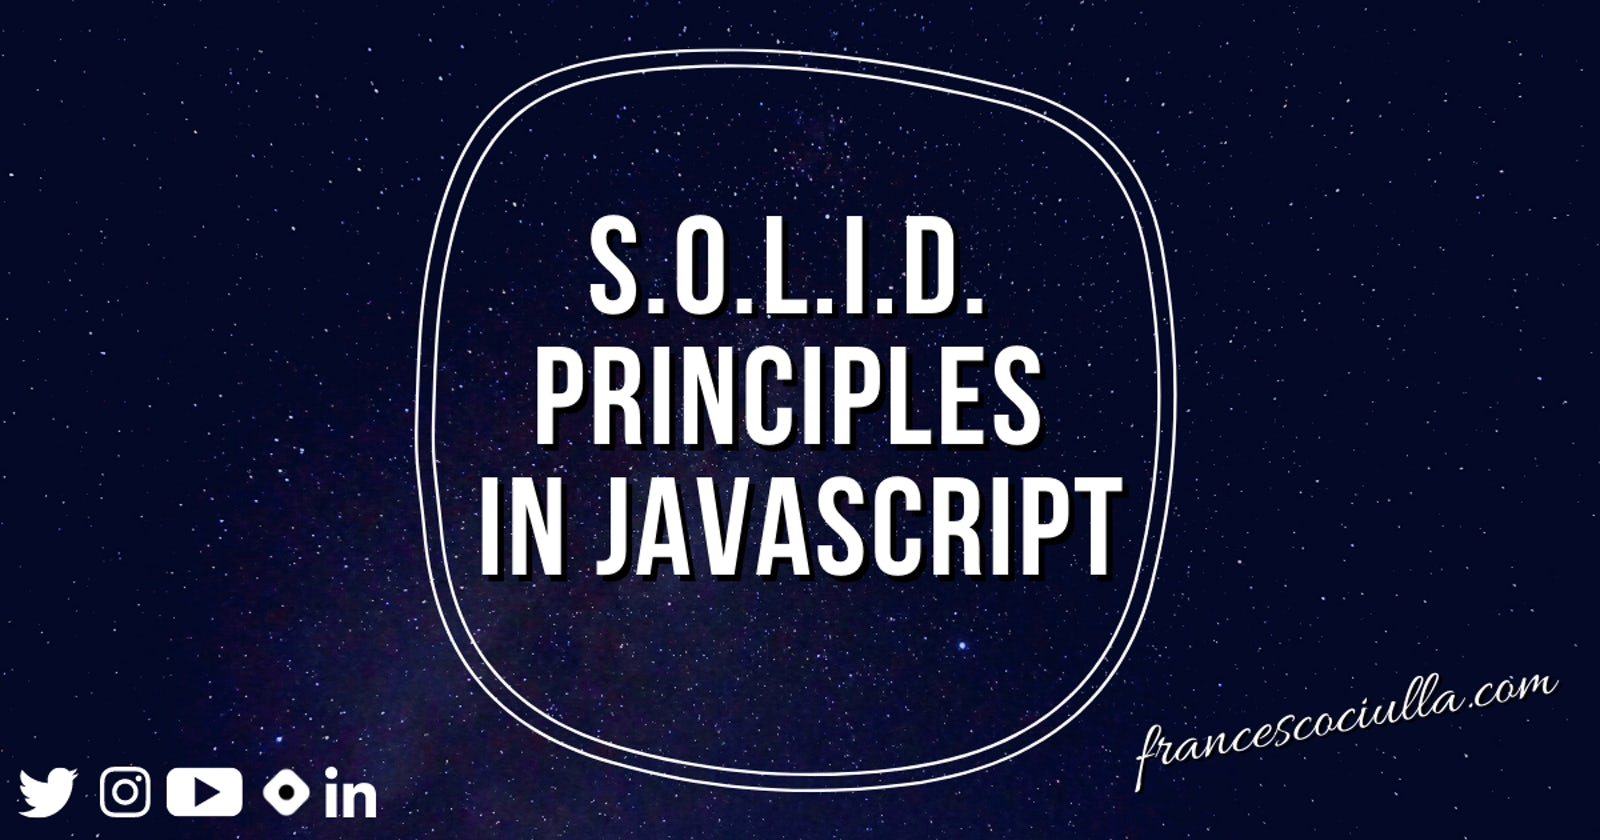 S.O.L.I.D. Principles around You, in JavaScript